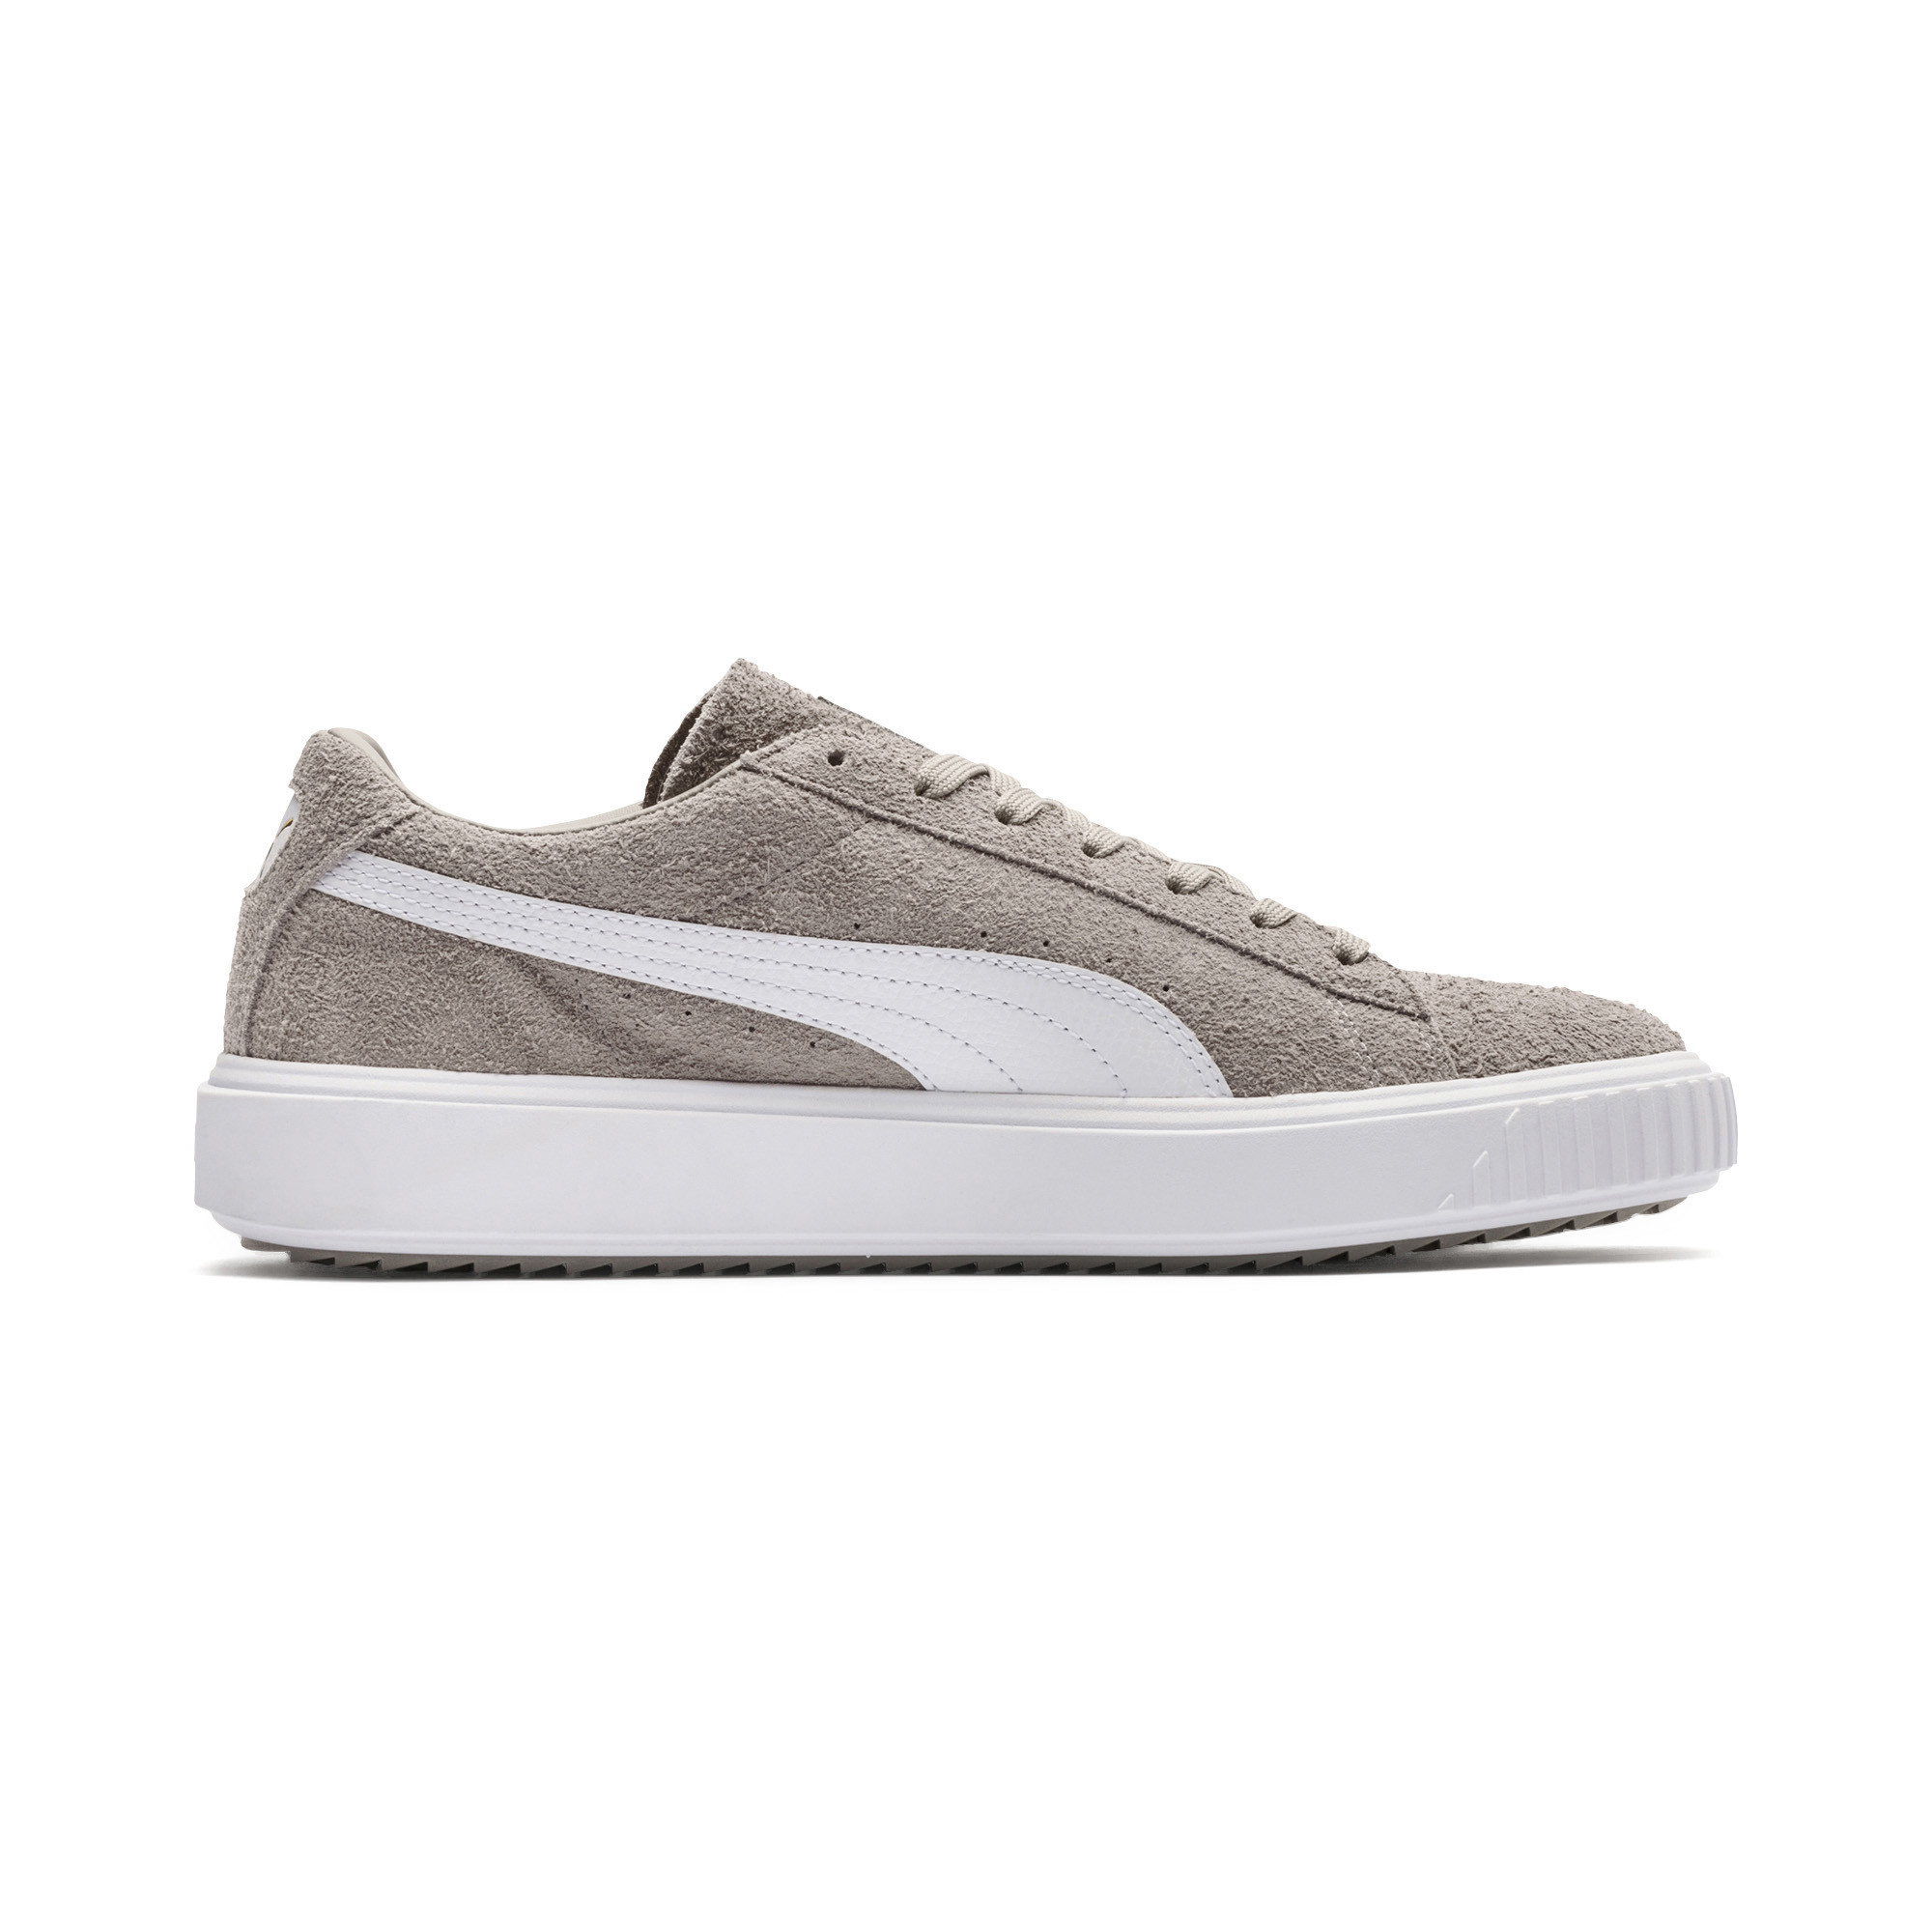 Image Puma Breaker Evolution Men's Sneakers #5